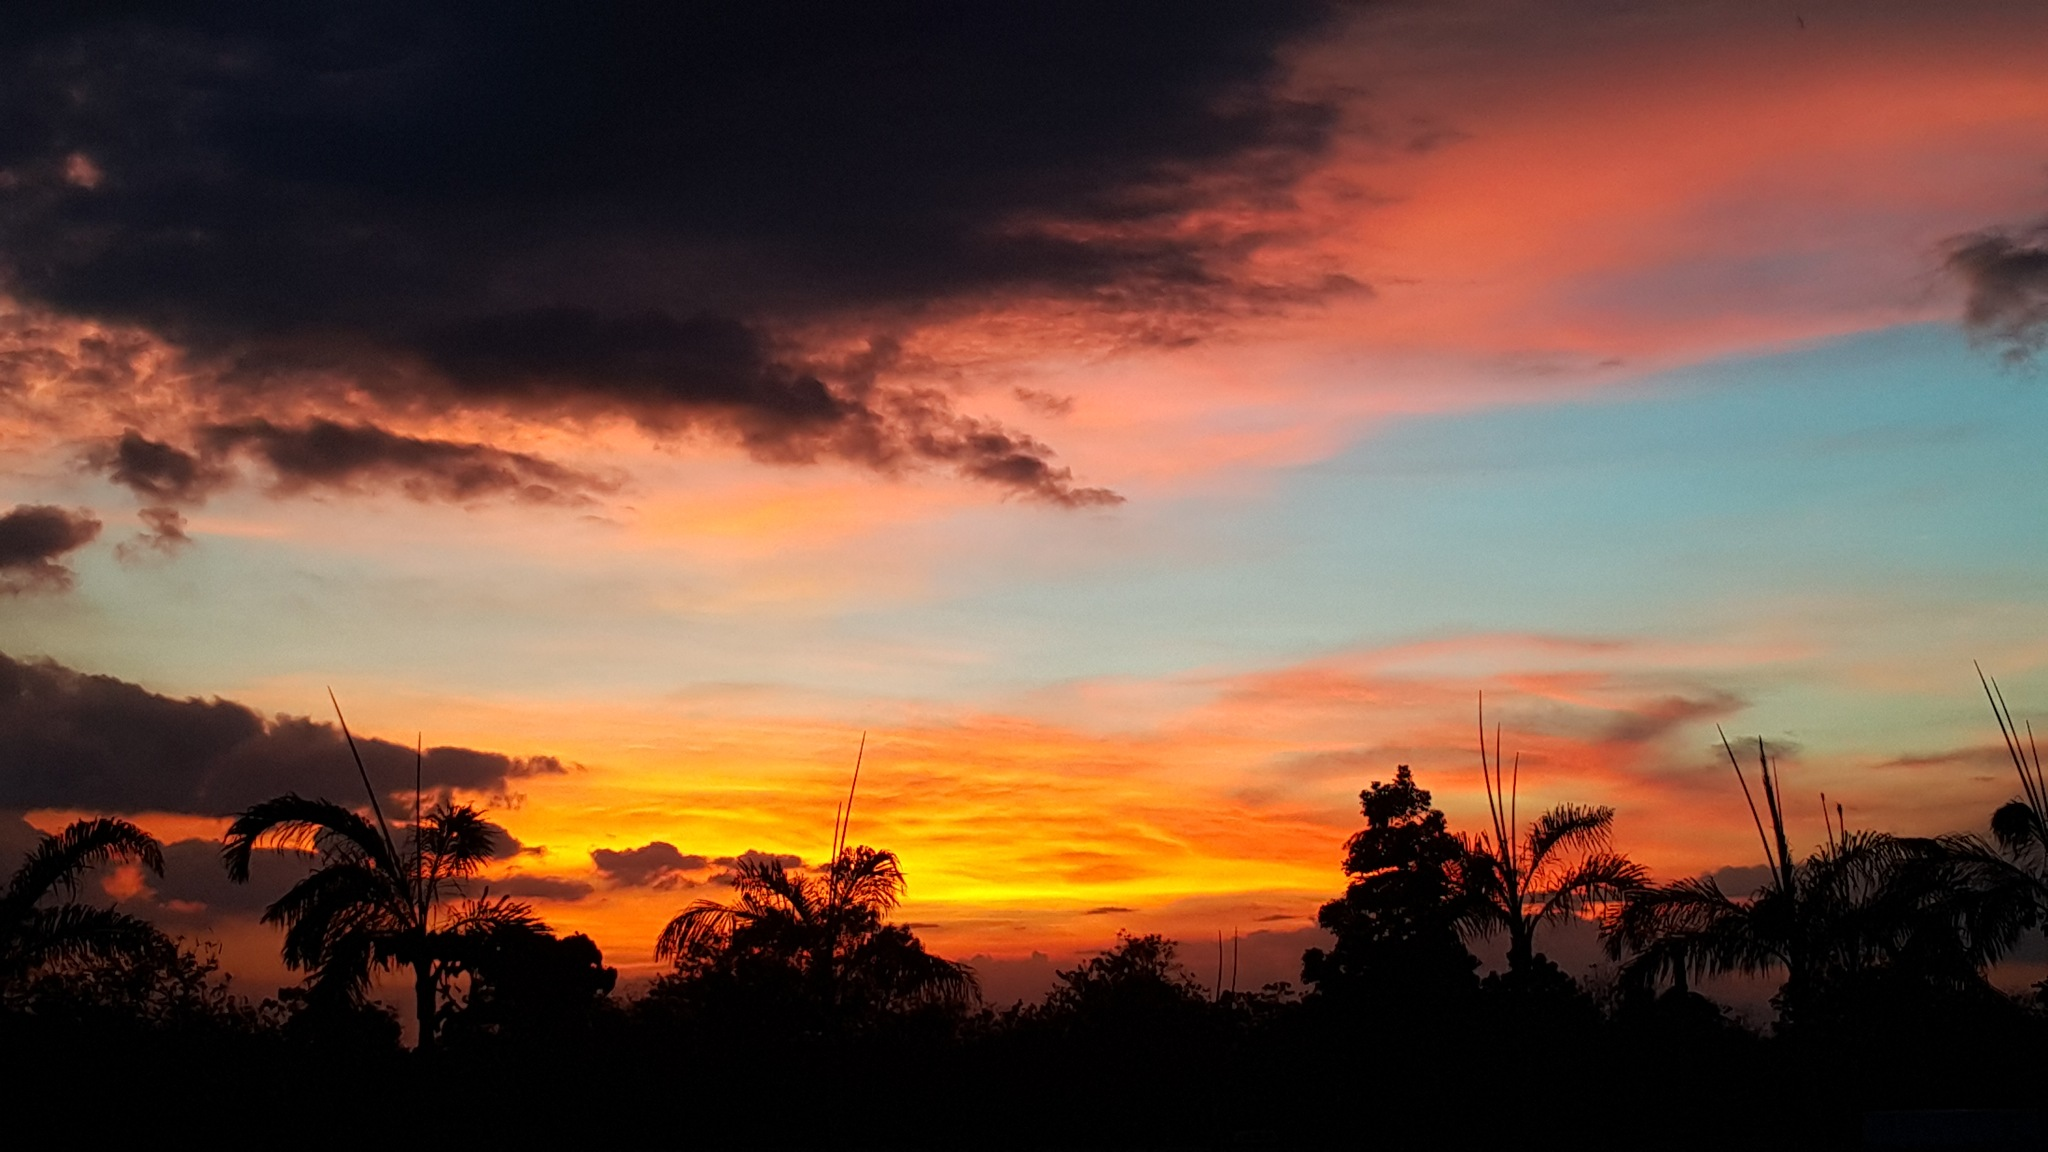 SUNSET BY THE CEMETERY by Corazon Quimbo